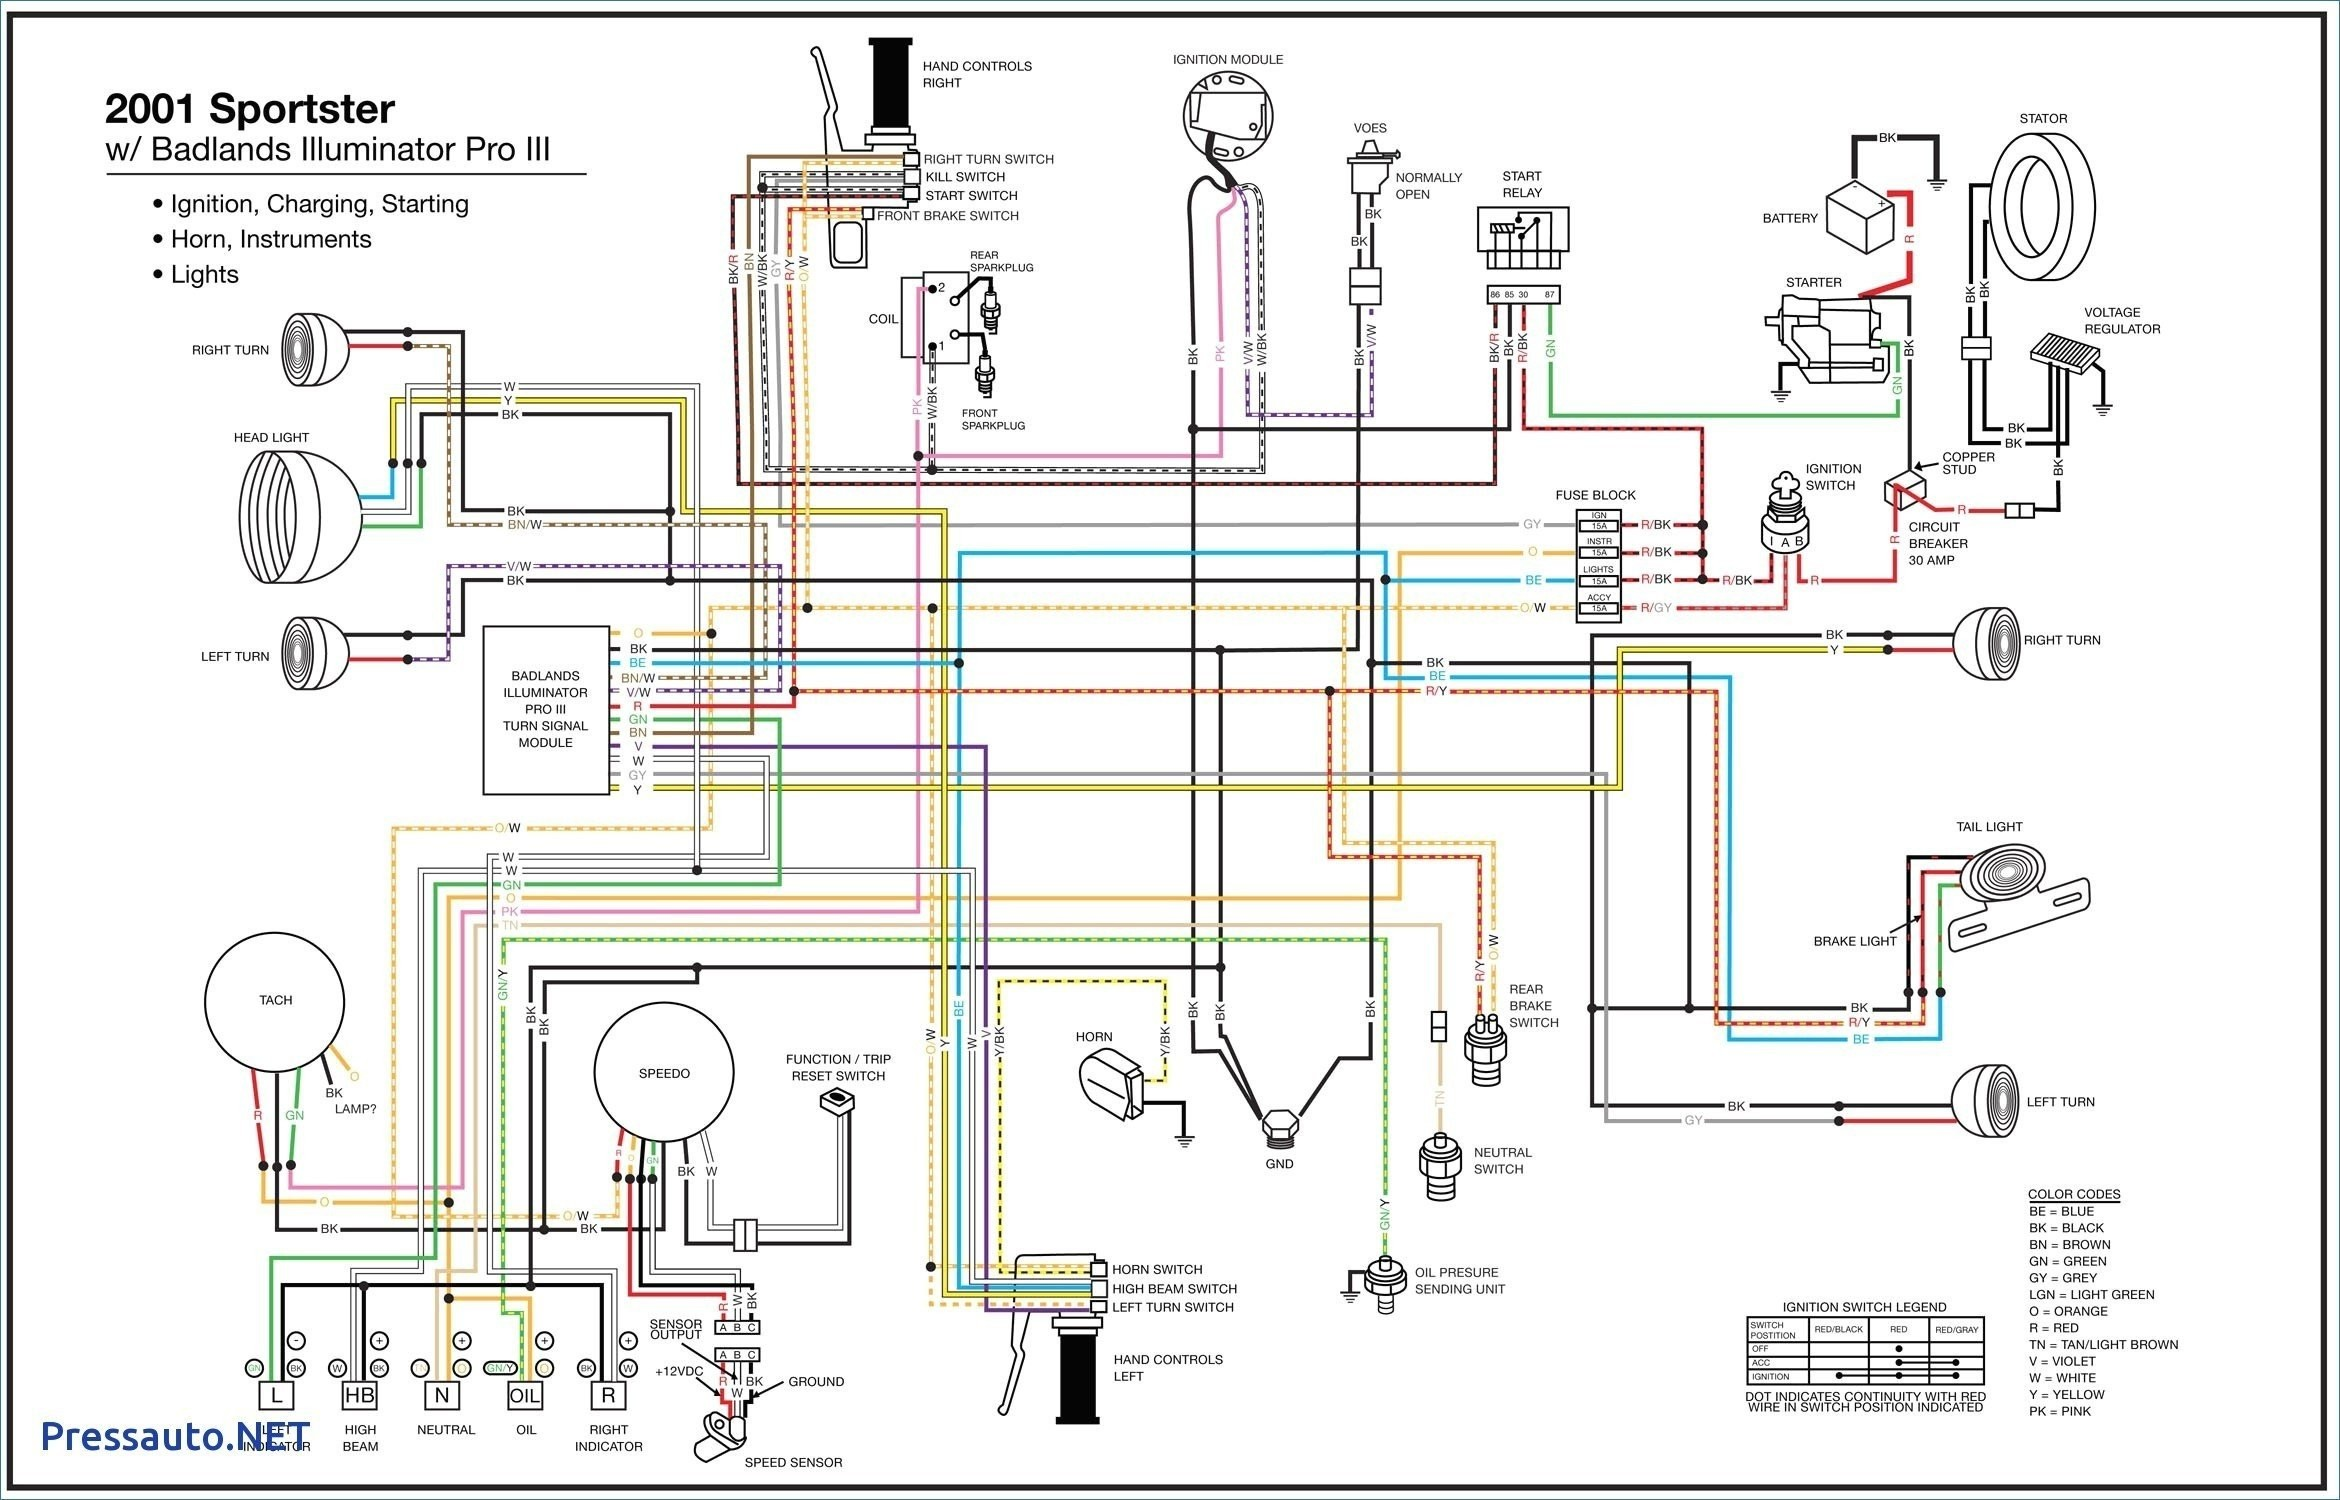 TN_3233] Bmw 325Ci Wiring Harness Download DiagramOsuri Emba Mohammedshrine Librar Wiring 101